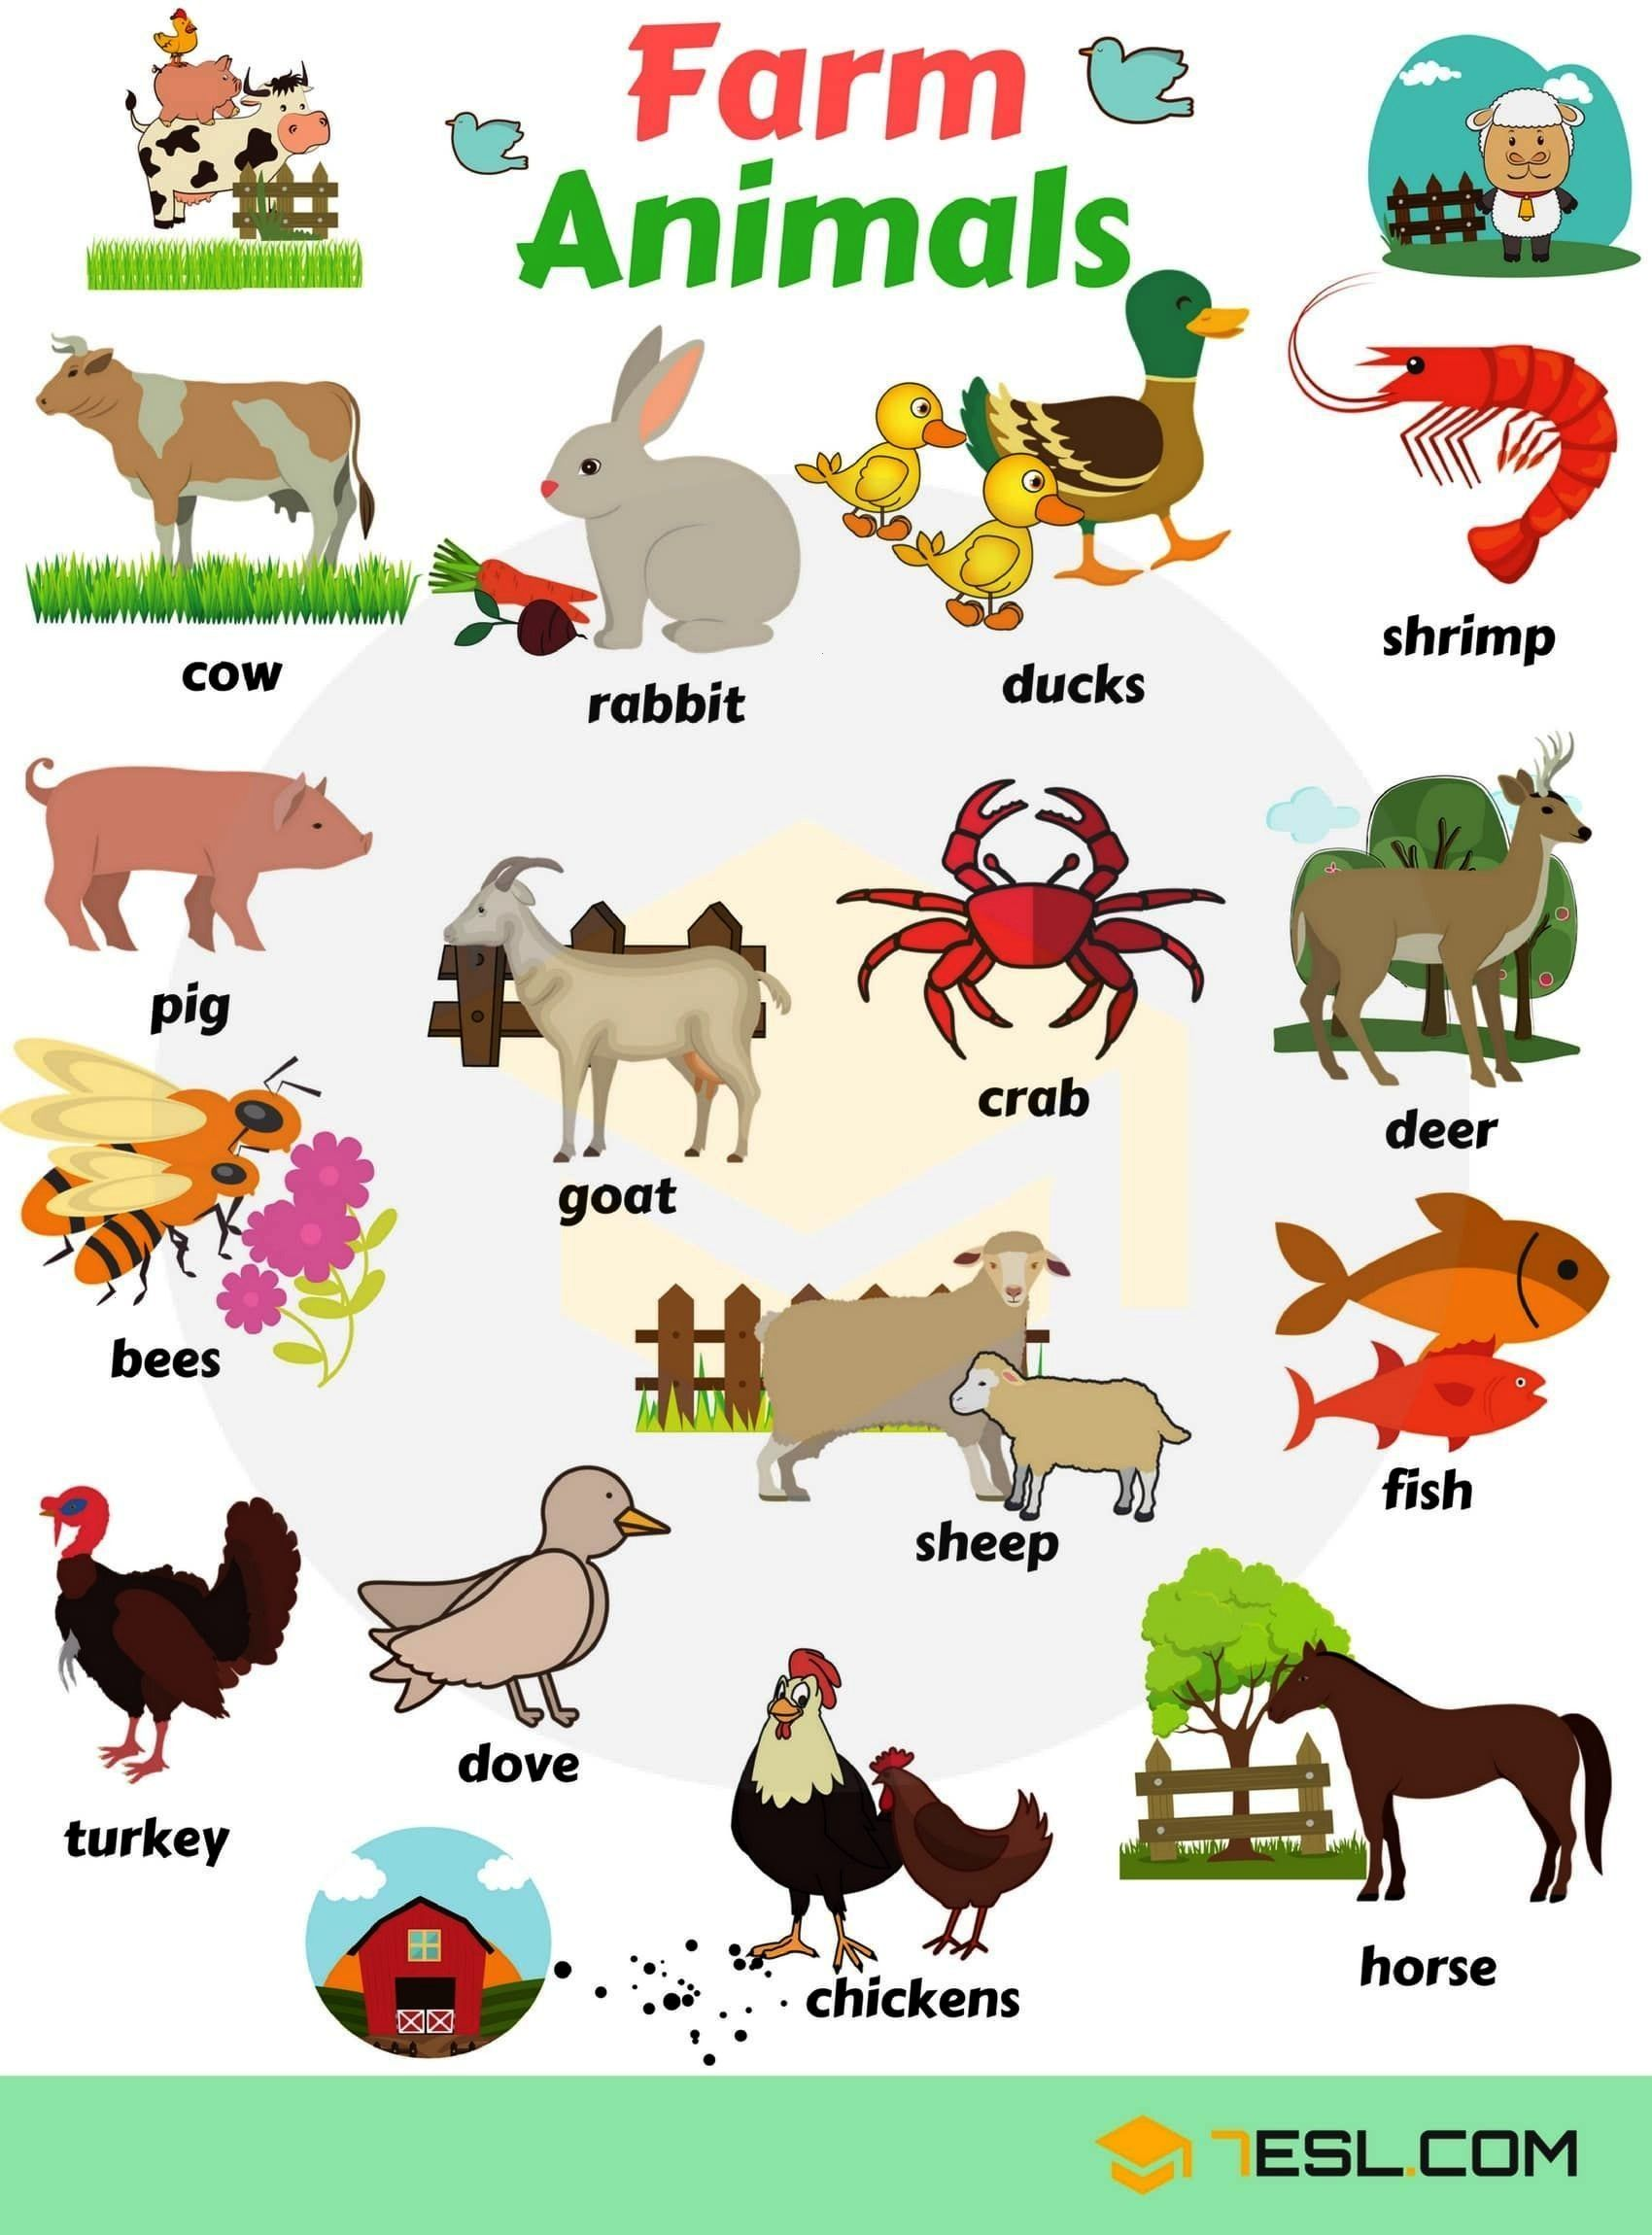 Animals Farm Listfarm Animals List Farm Animals List Farm Animals List 3 6ks In 2020 Animals Name With Picture Farm Animals List Animals Name In English